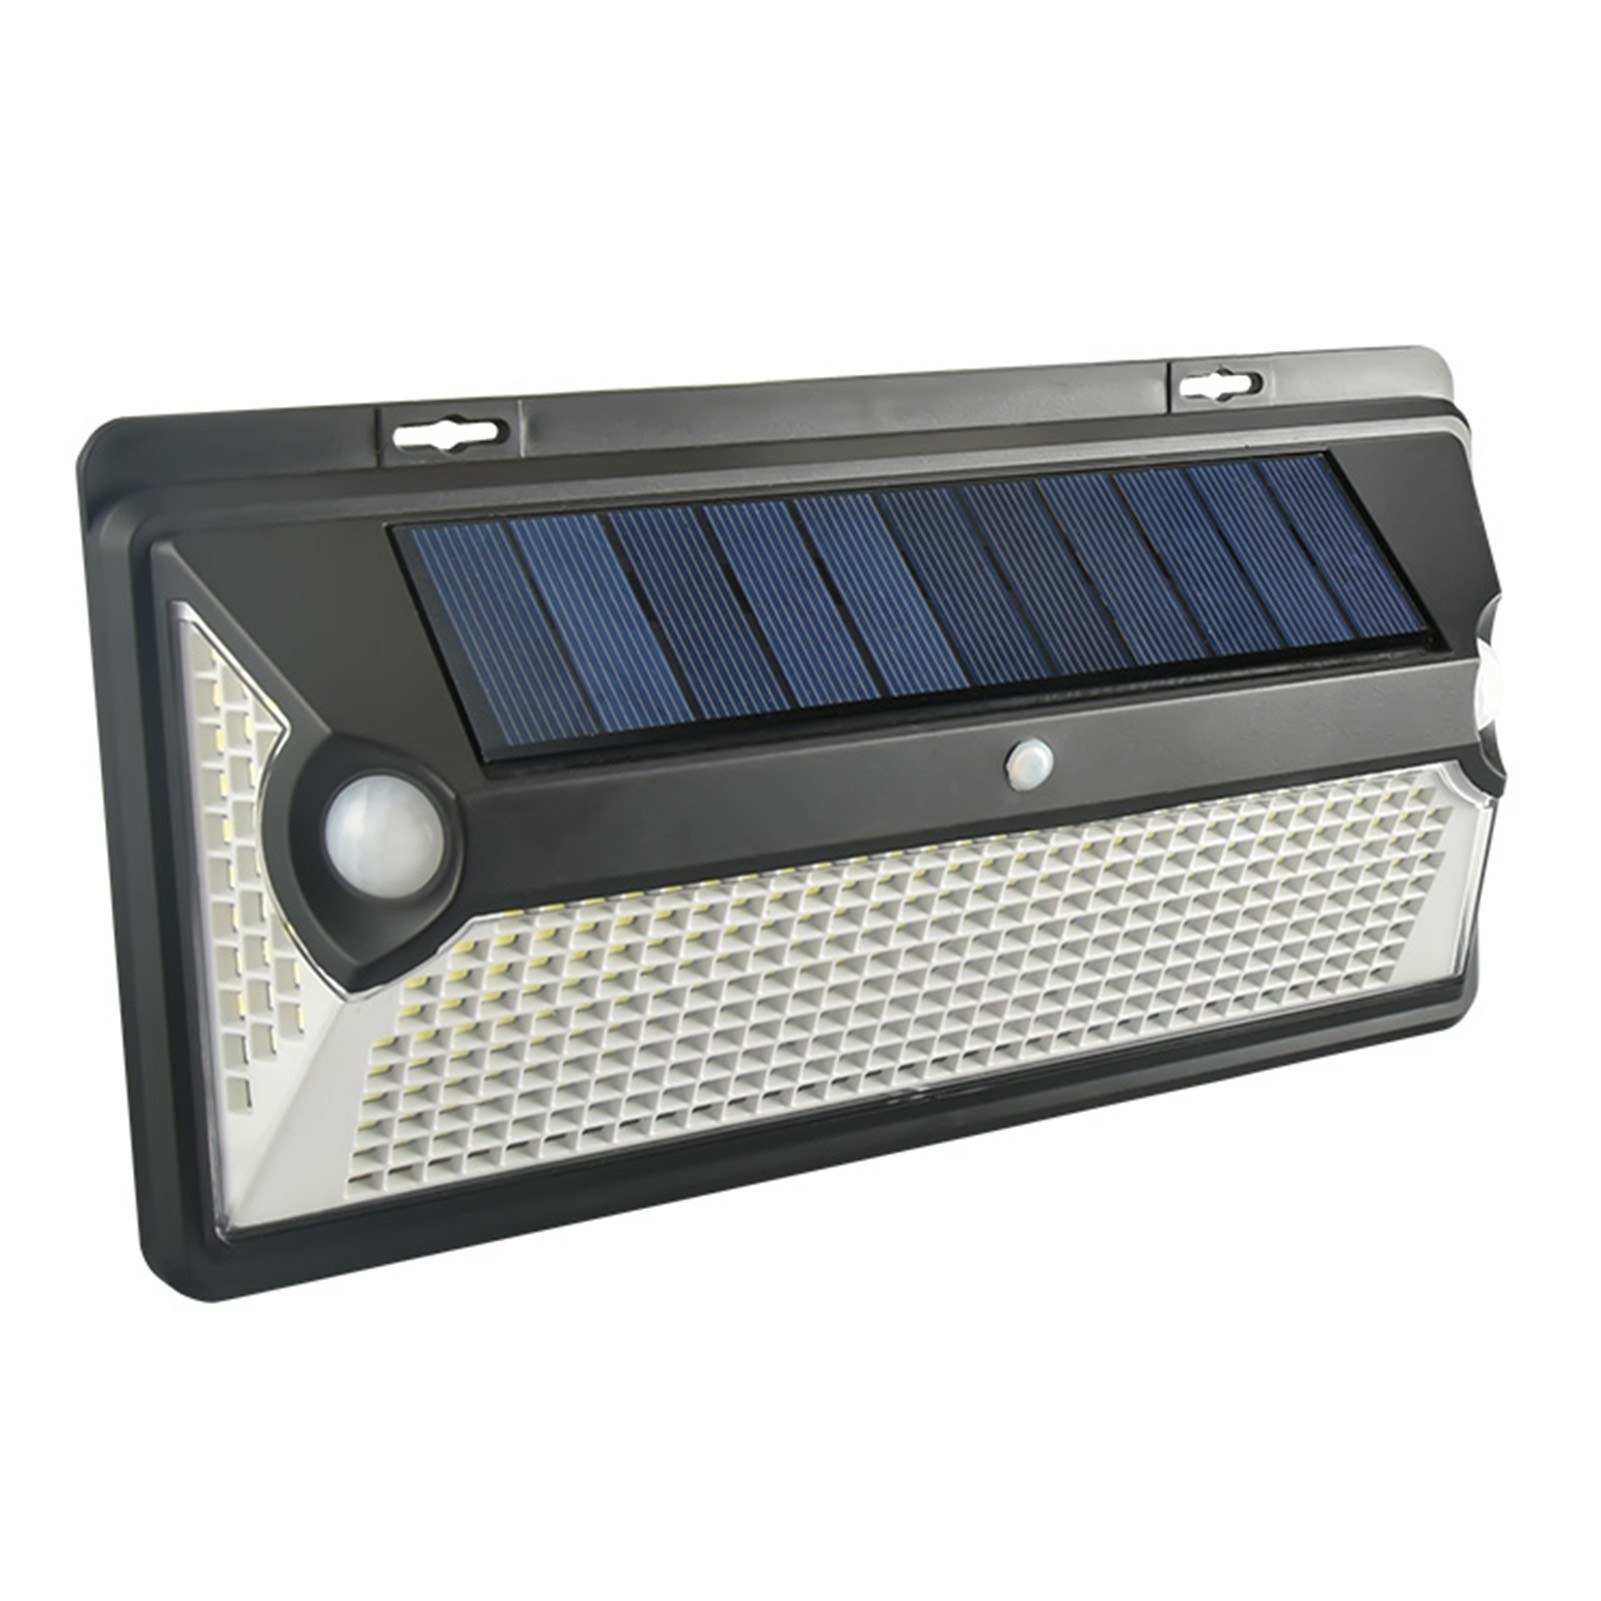 Tomtop - 51% OFF 360LEDs Solar Powered Energy Wall Light, Free Shipping $21.99